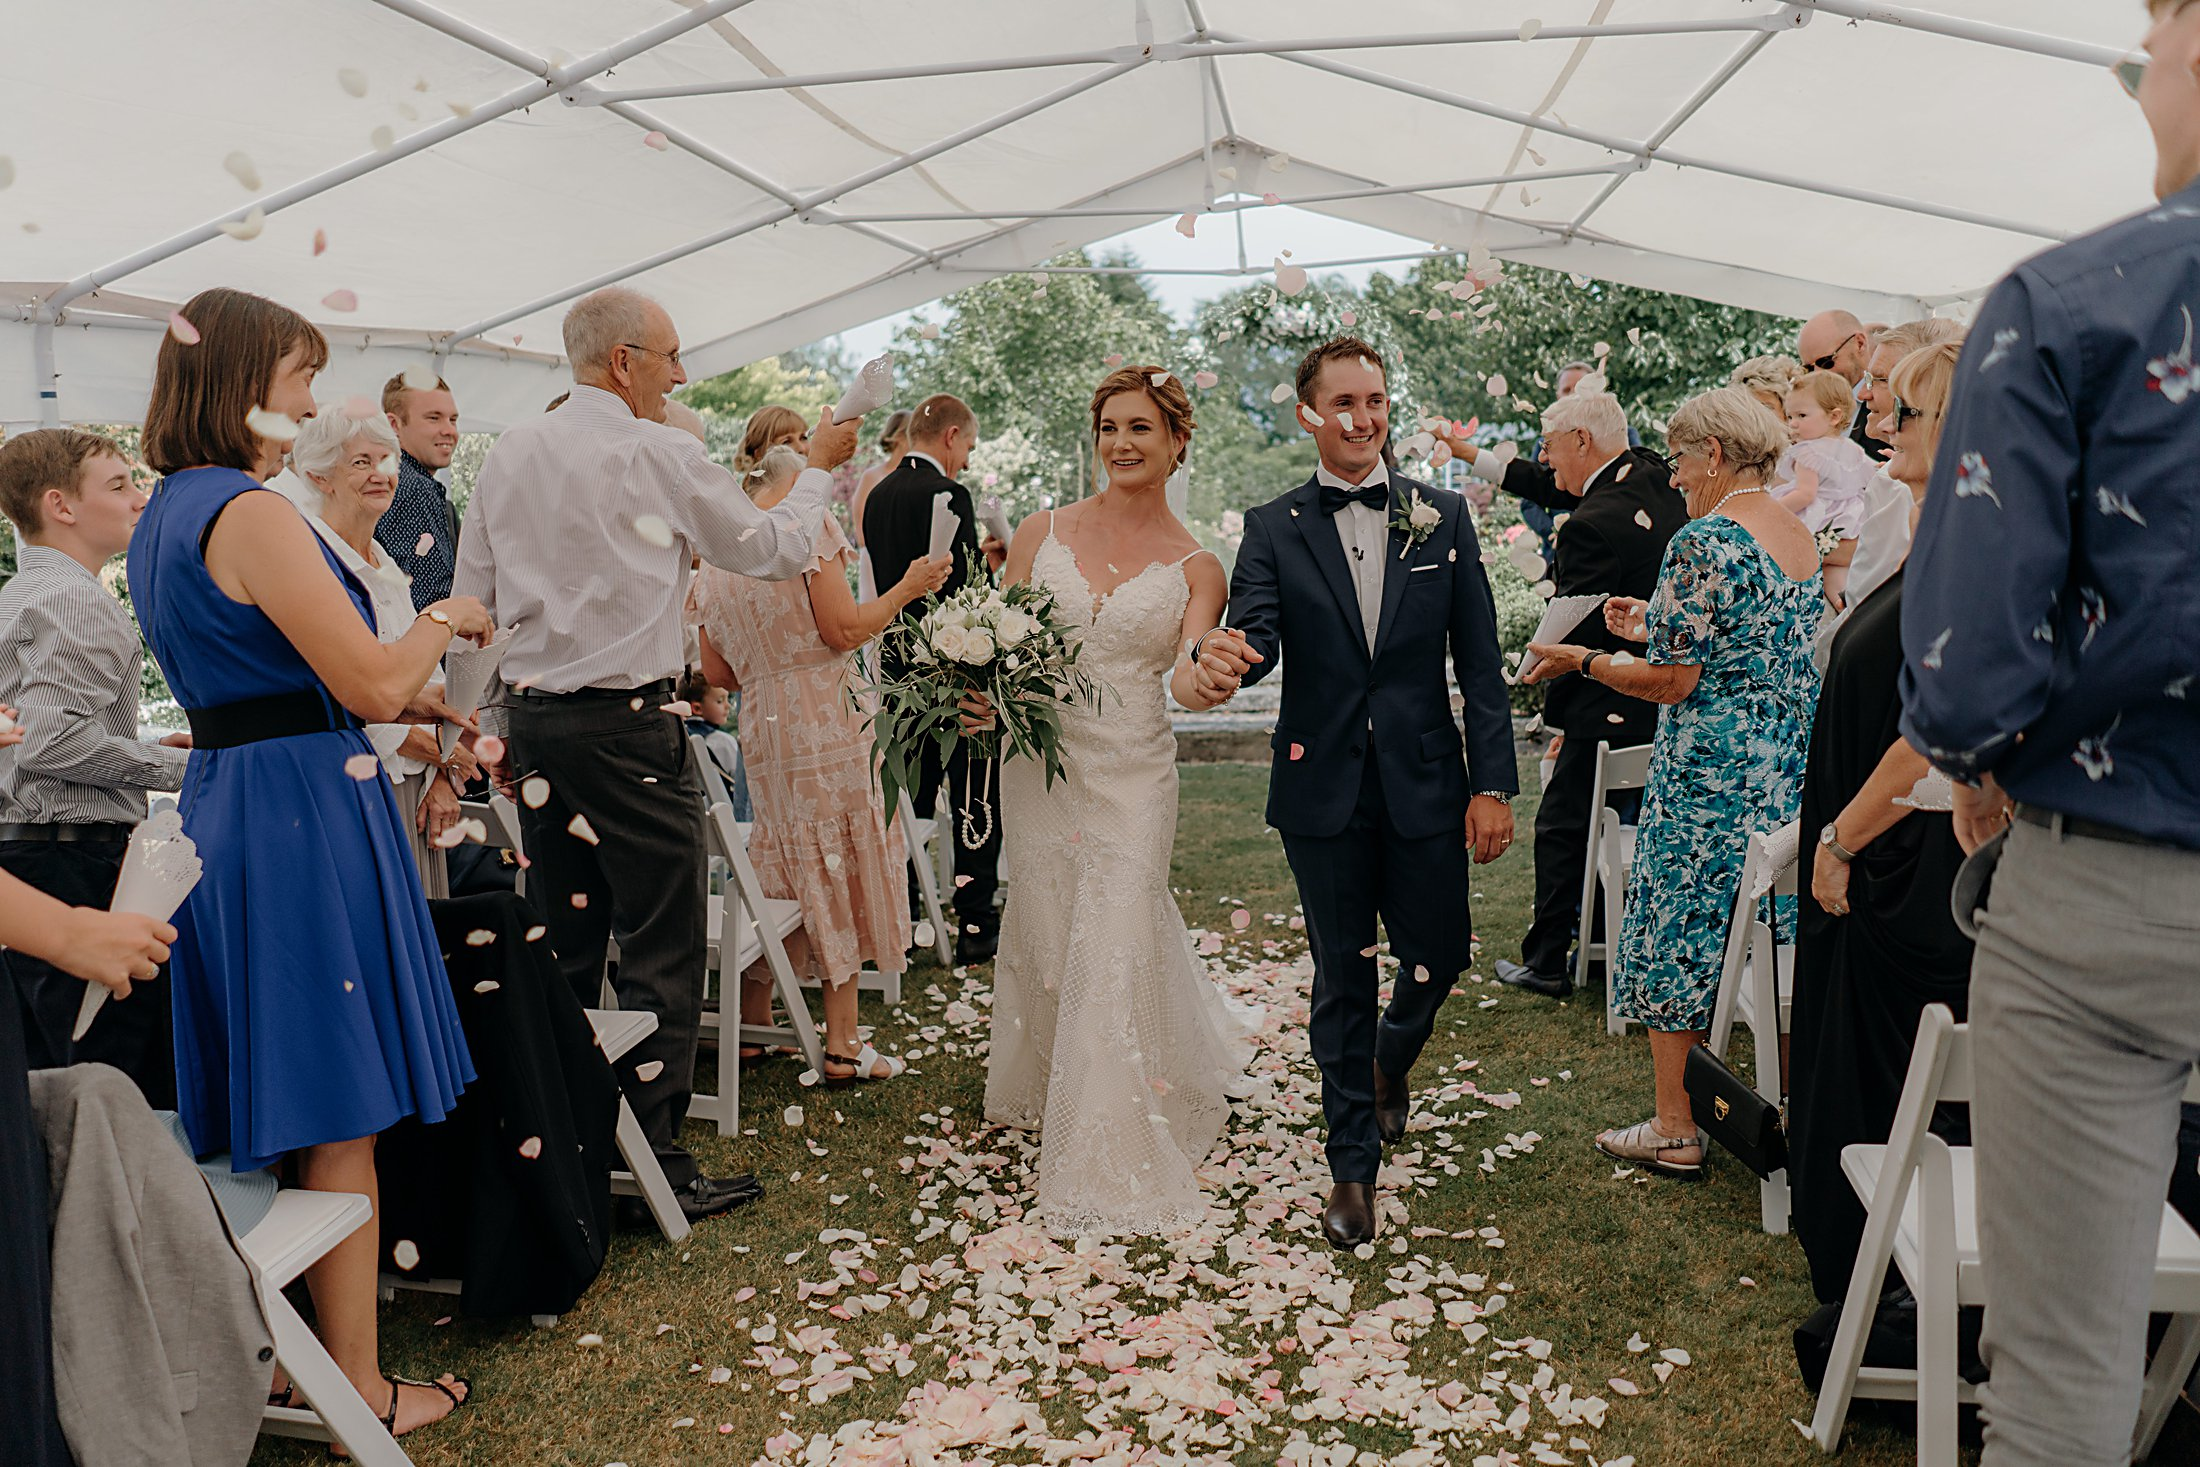 Petal toss as Bride and Groom come back down the aisle